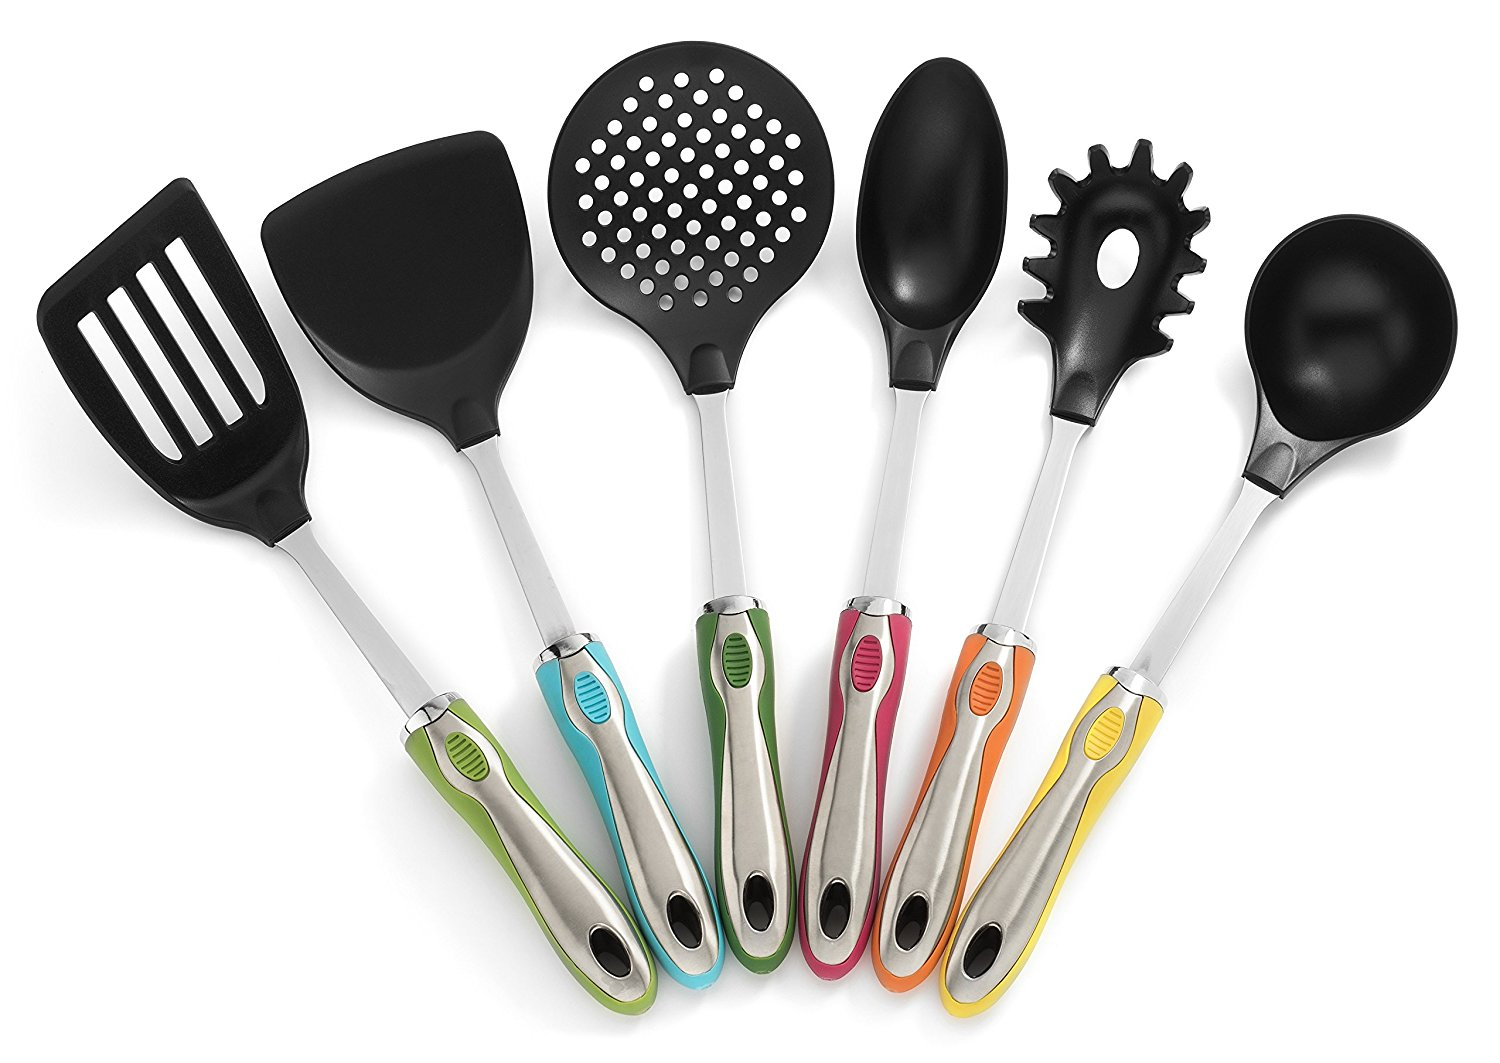 Kitchen Utensils With Holder 7 Pc Cute Utensil Set – Colorful